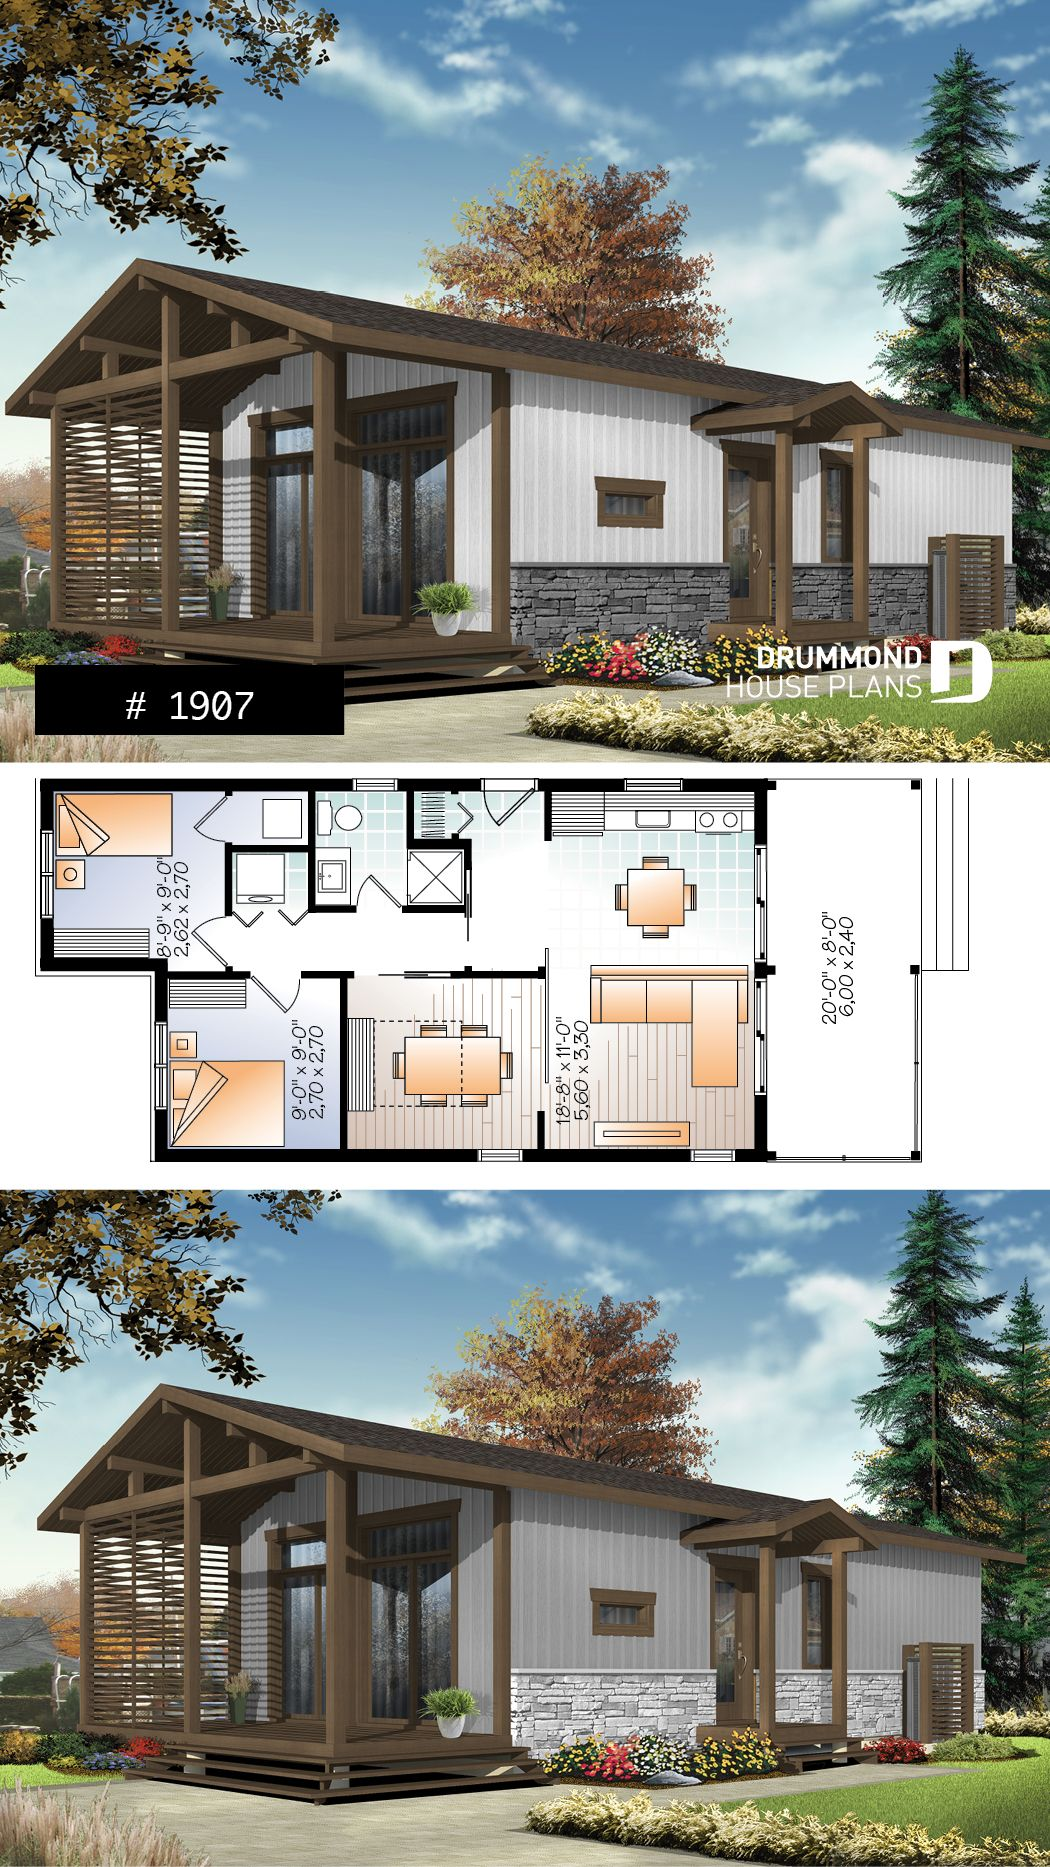 Modern rustic 700 sq ft tiny small house plan very versatile 3